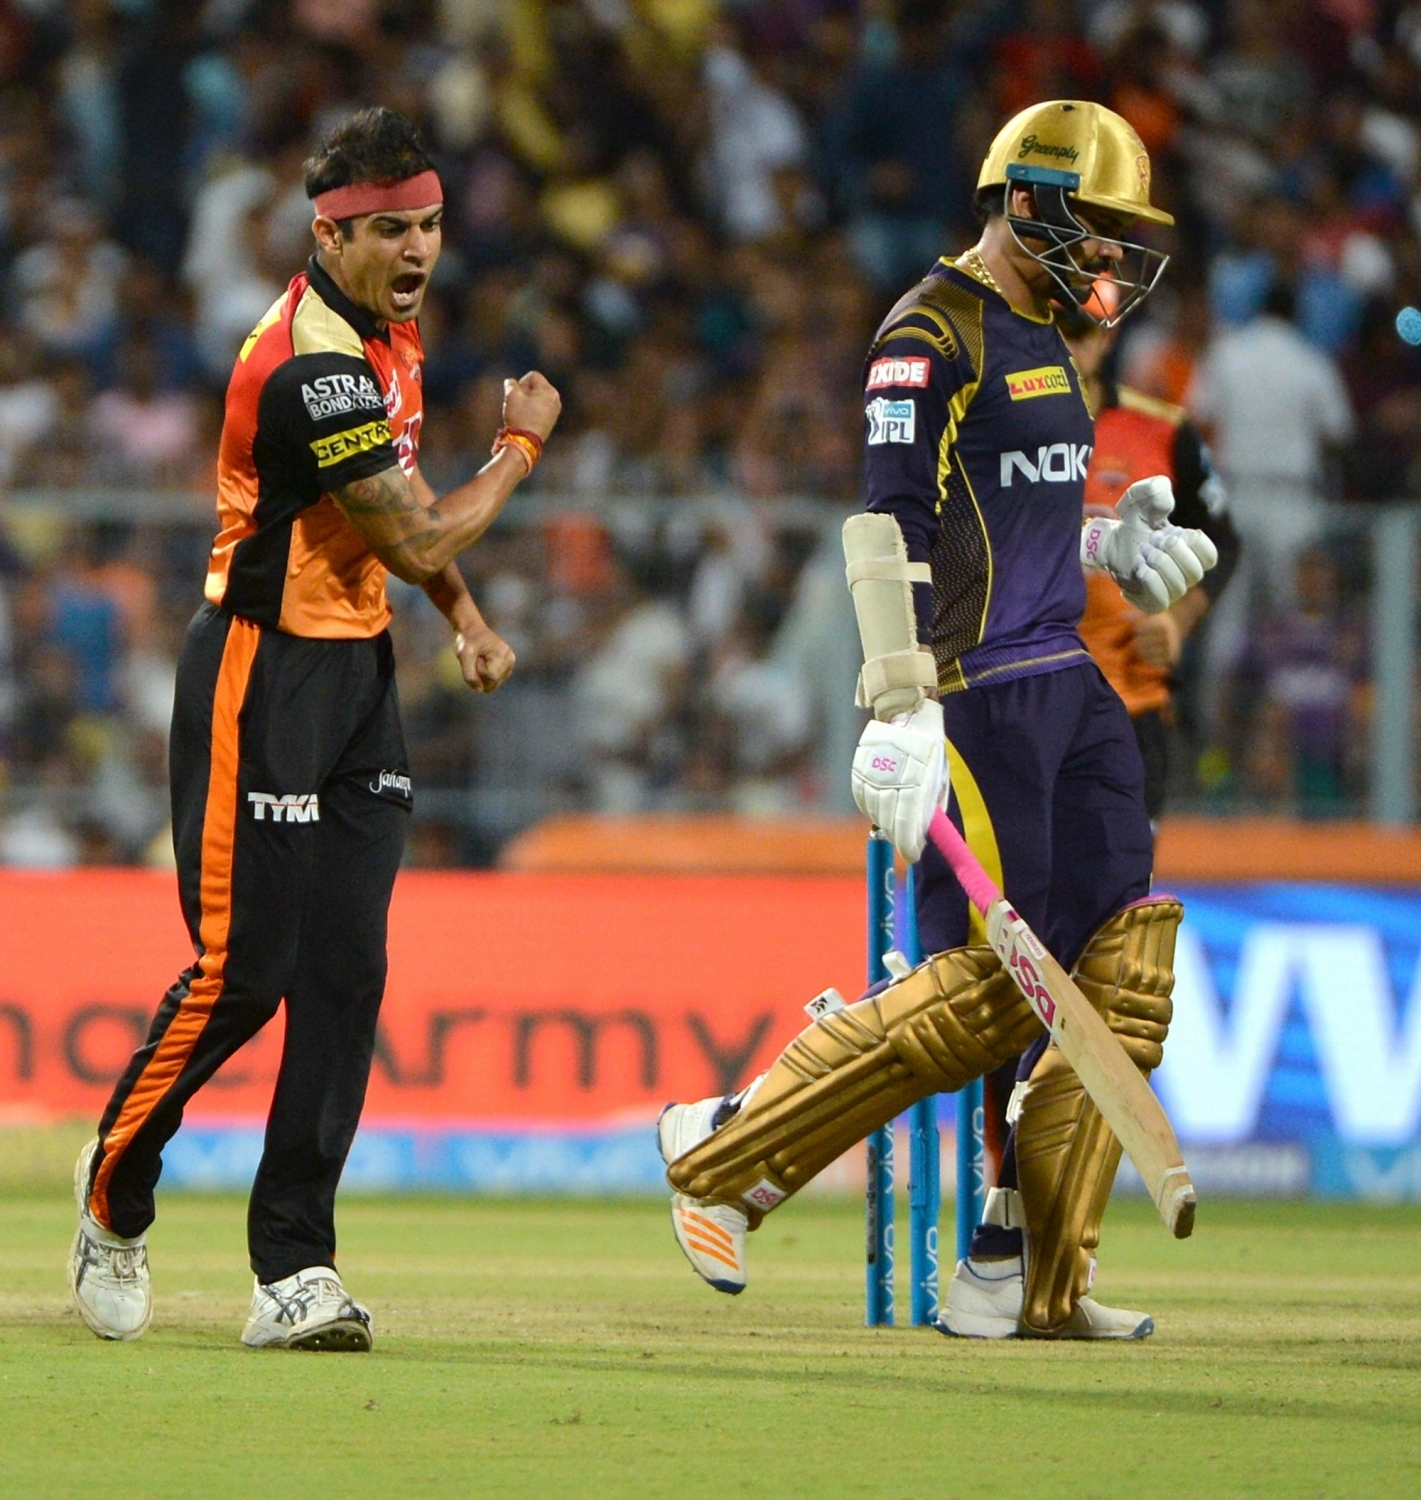 Siddarth Kaul during the match against KKR at Eden Gardens | IANS